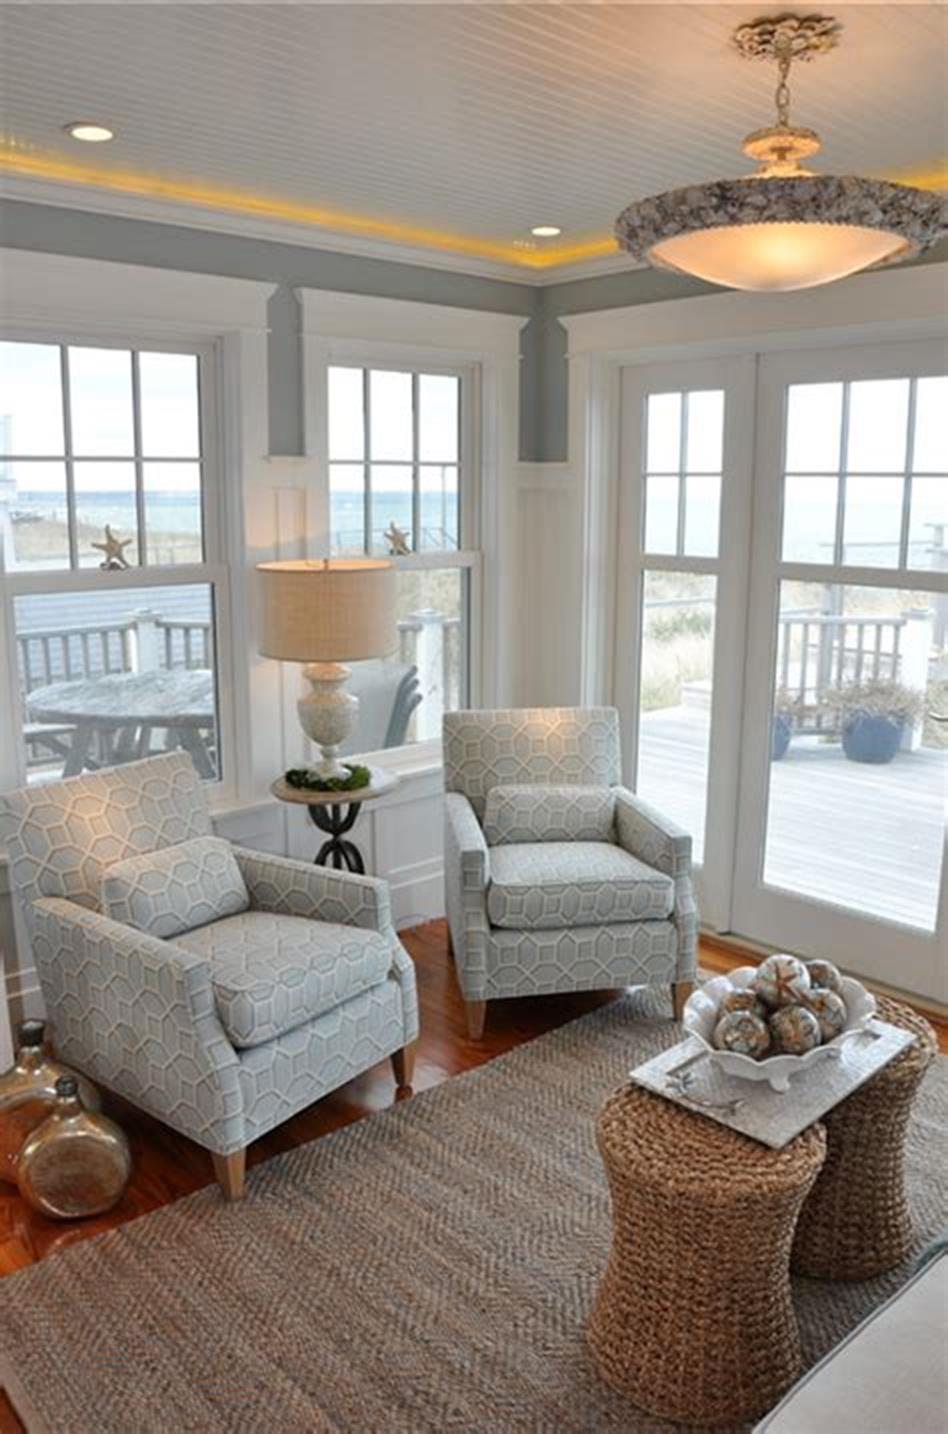 50 Most Popular Affordable Sunroom Design Ideas on a Budget 42